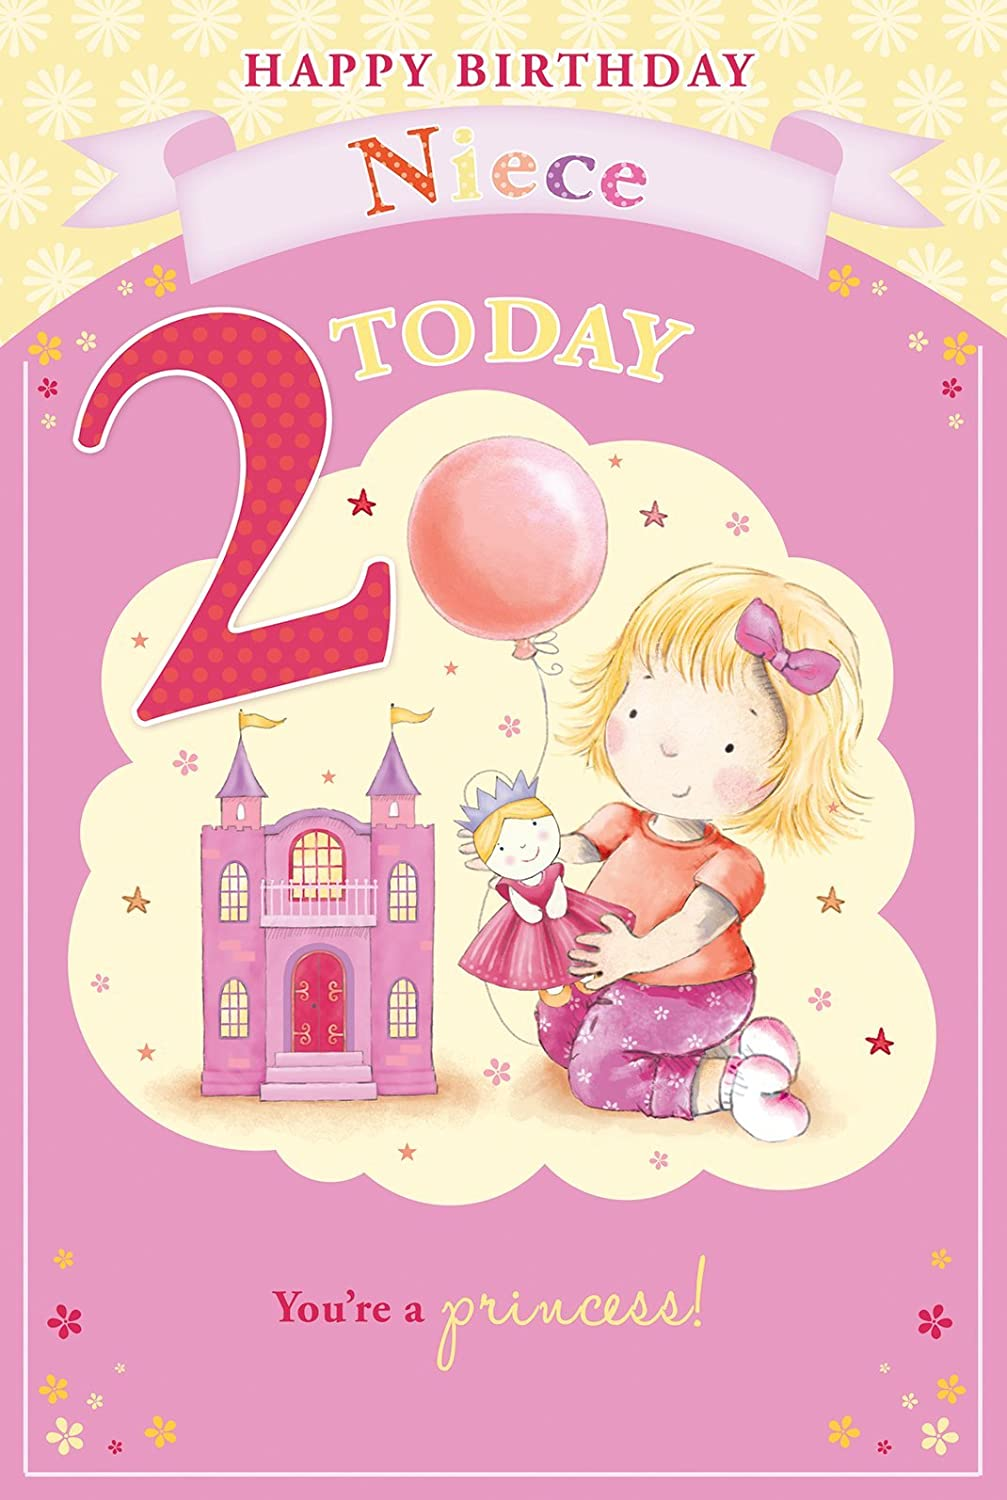 Granddaughters 2nd Birthday Card 2 Today Little Girl Fairy – Happy 2nd Birthday Card